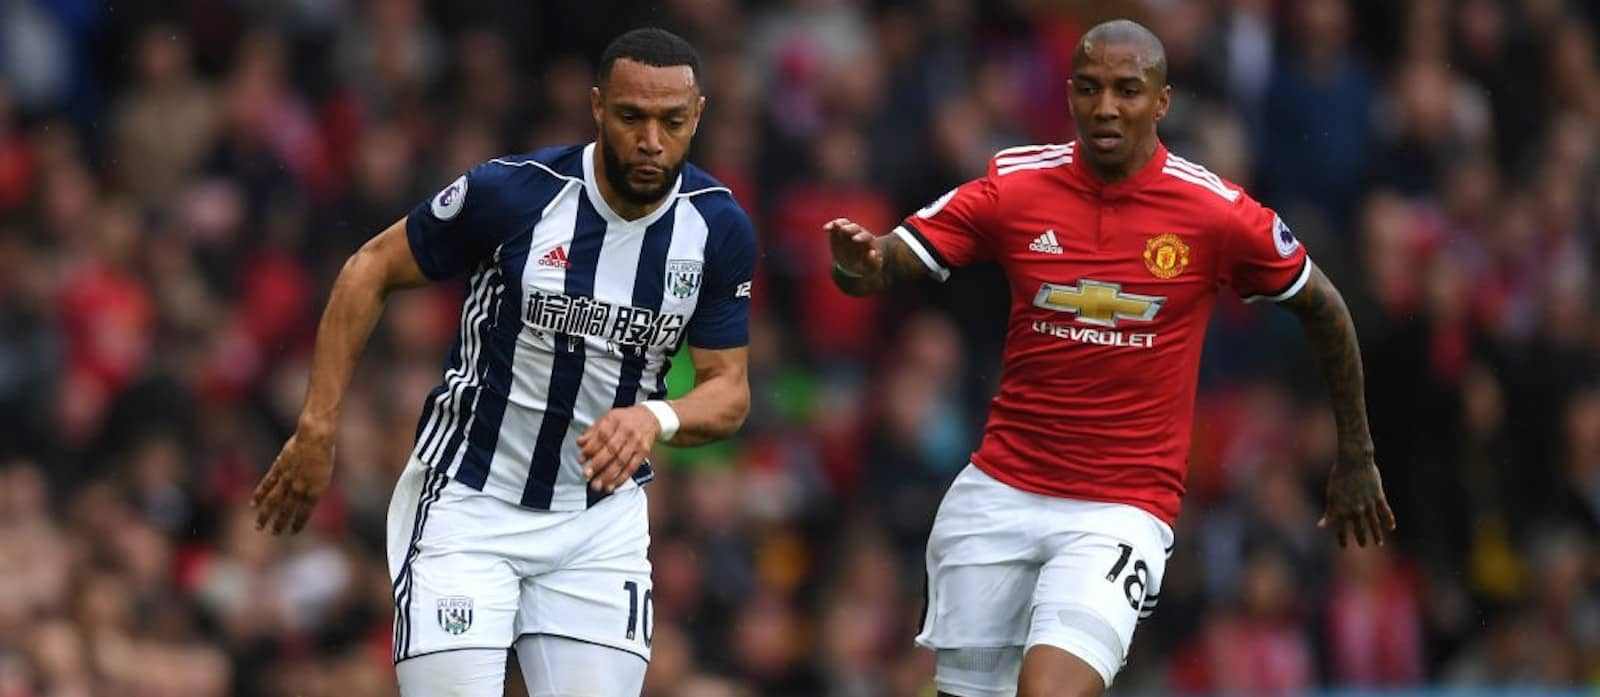 Thierry Henry criticises Man United's lack of width and ability to pull defences apart